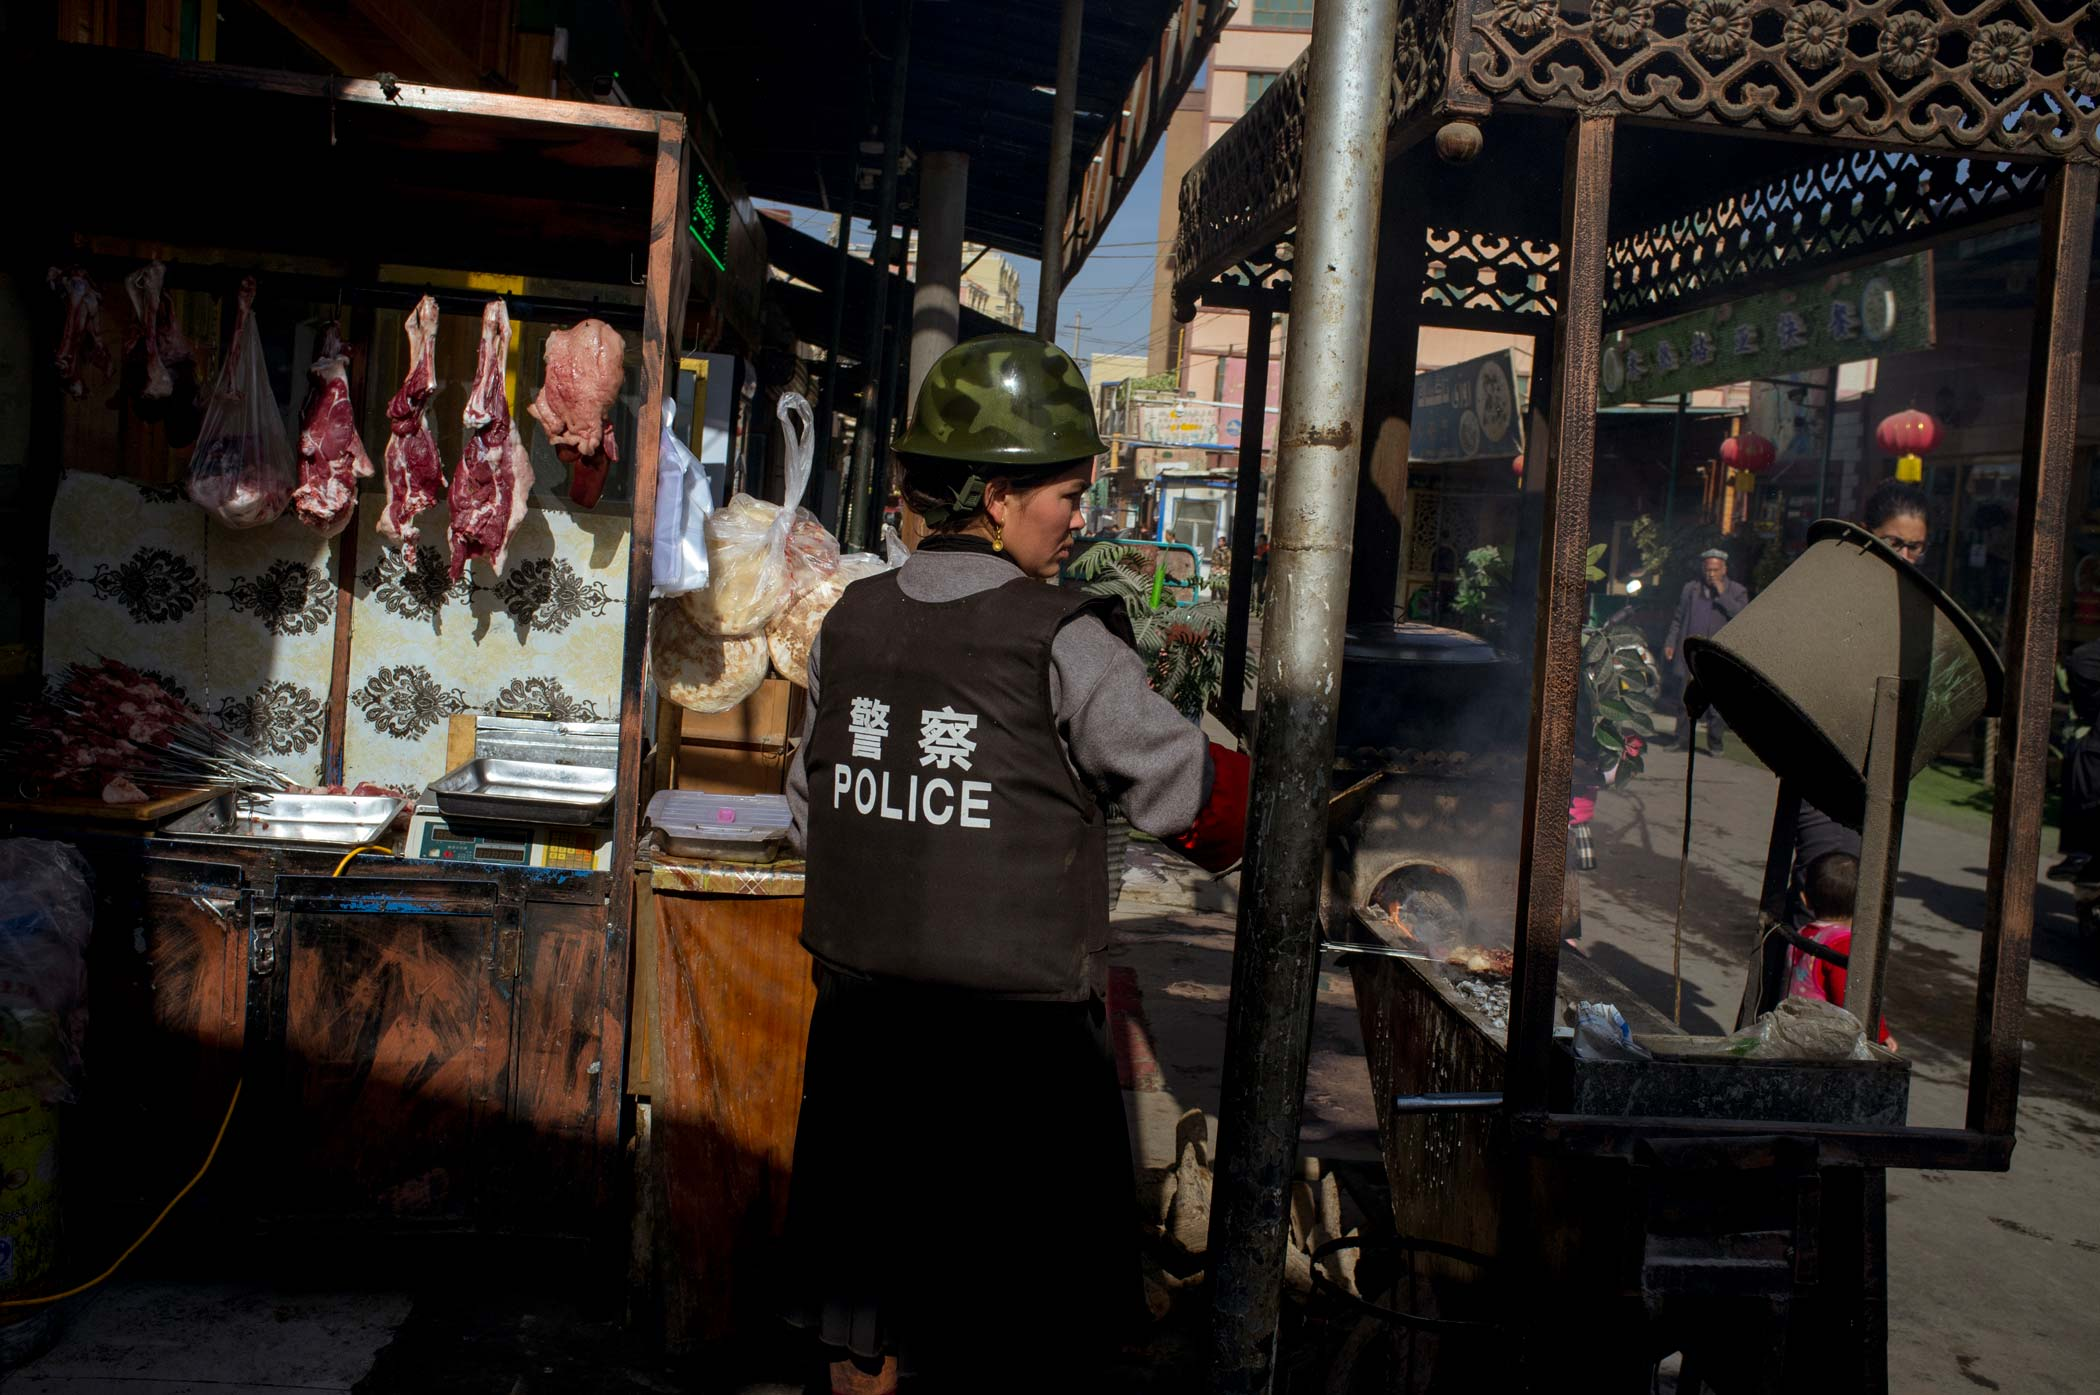 A street vendor in Xinjiang, China, wearing a police vest and helmet